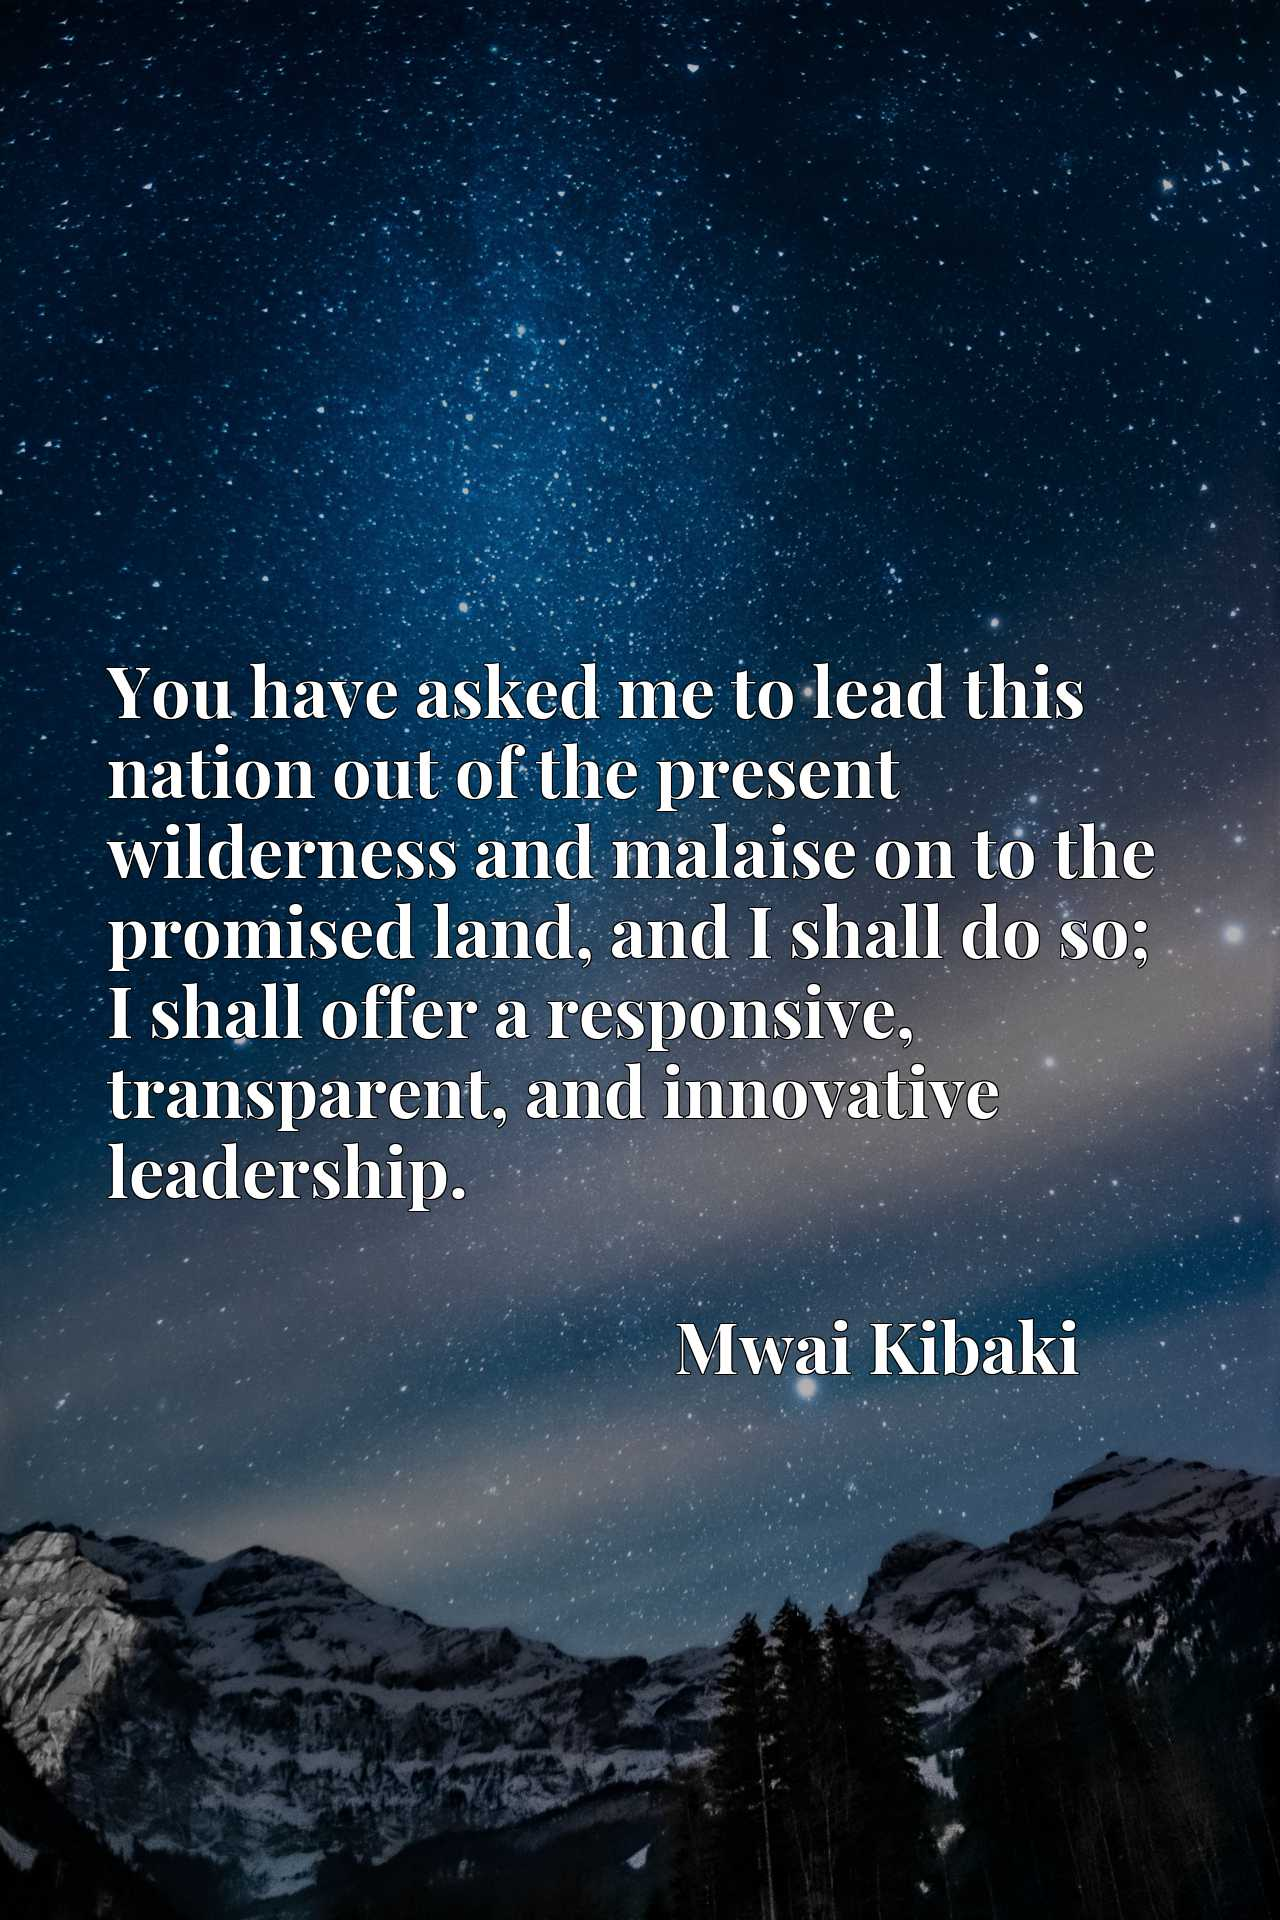 Quote Picture :You have asked me to lead this nation out of the present wilderness and malaise on to the promised land, and I shall do so; I shall offer a responsive, transparent, and innovative leadership.